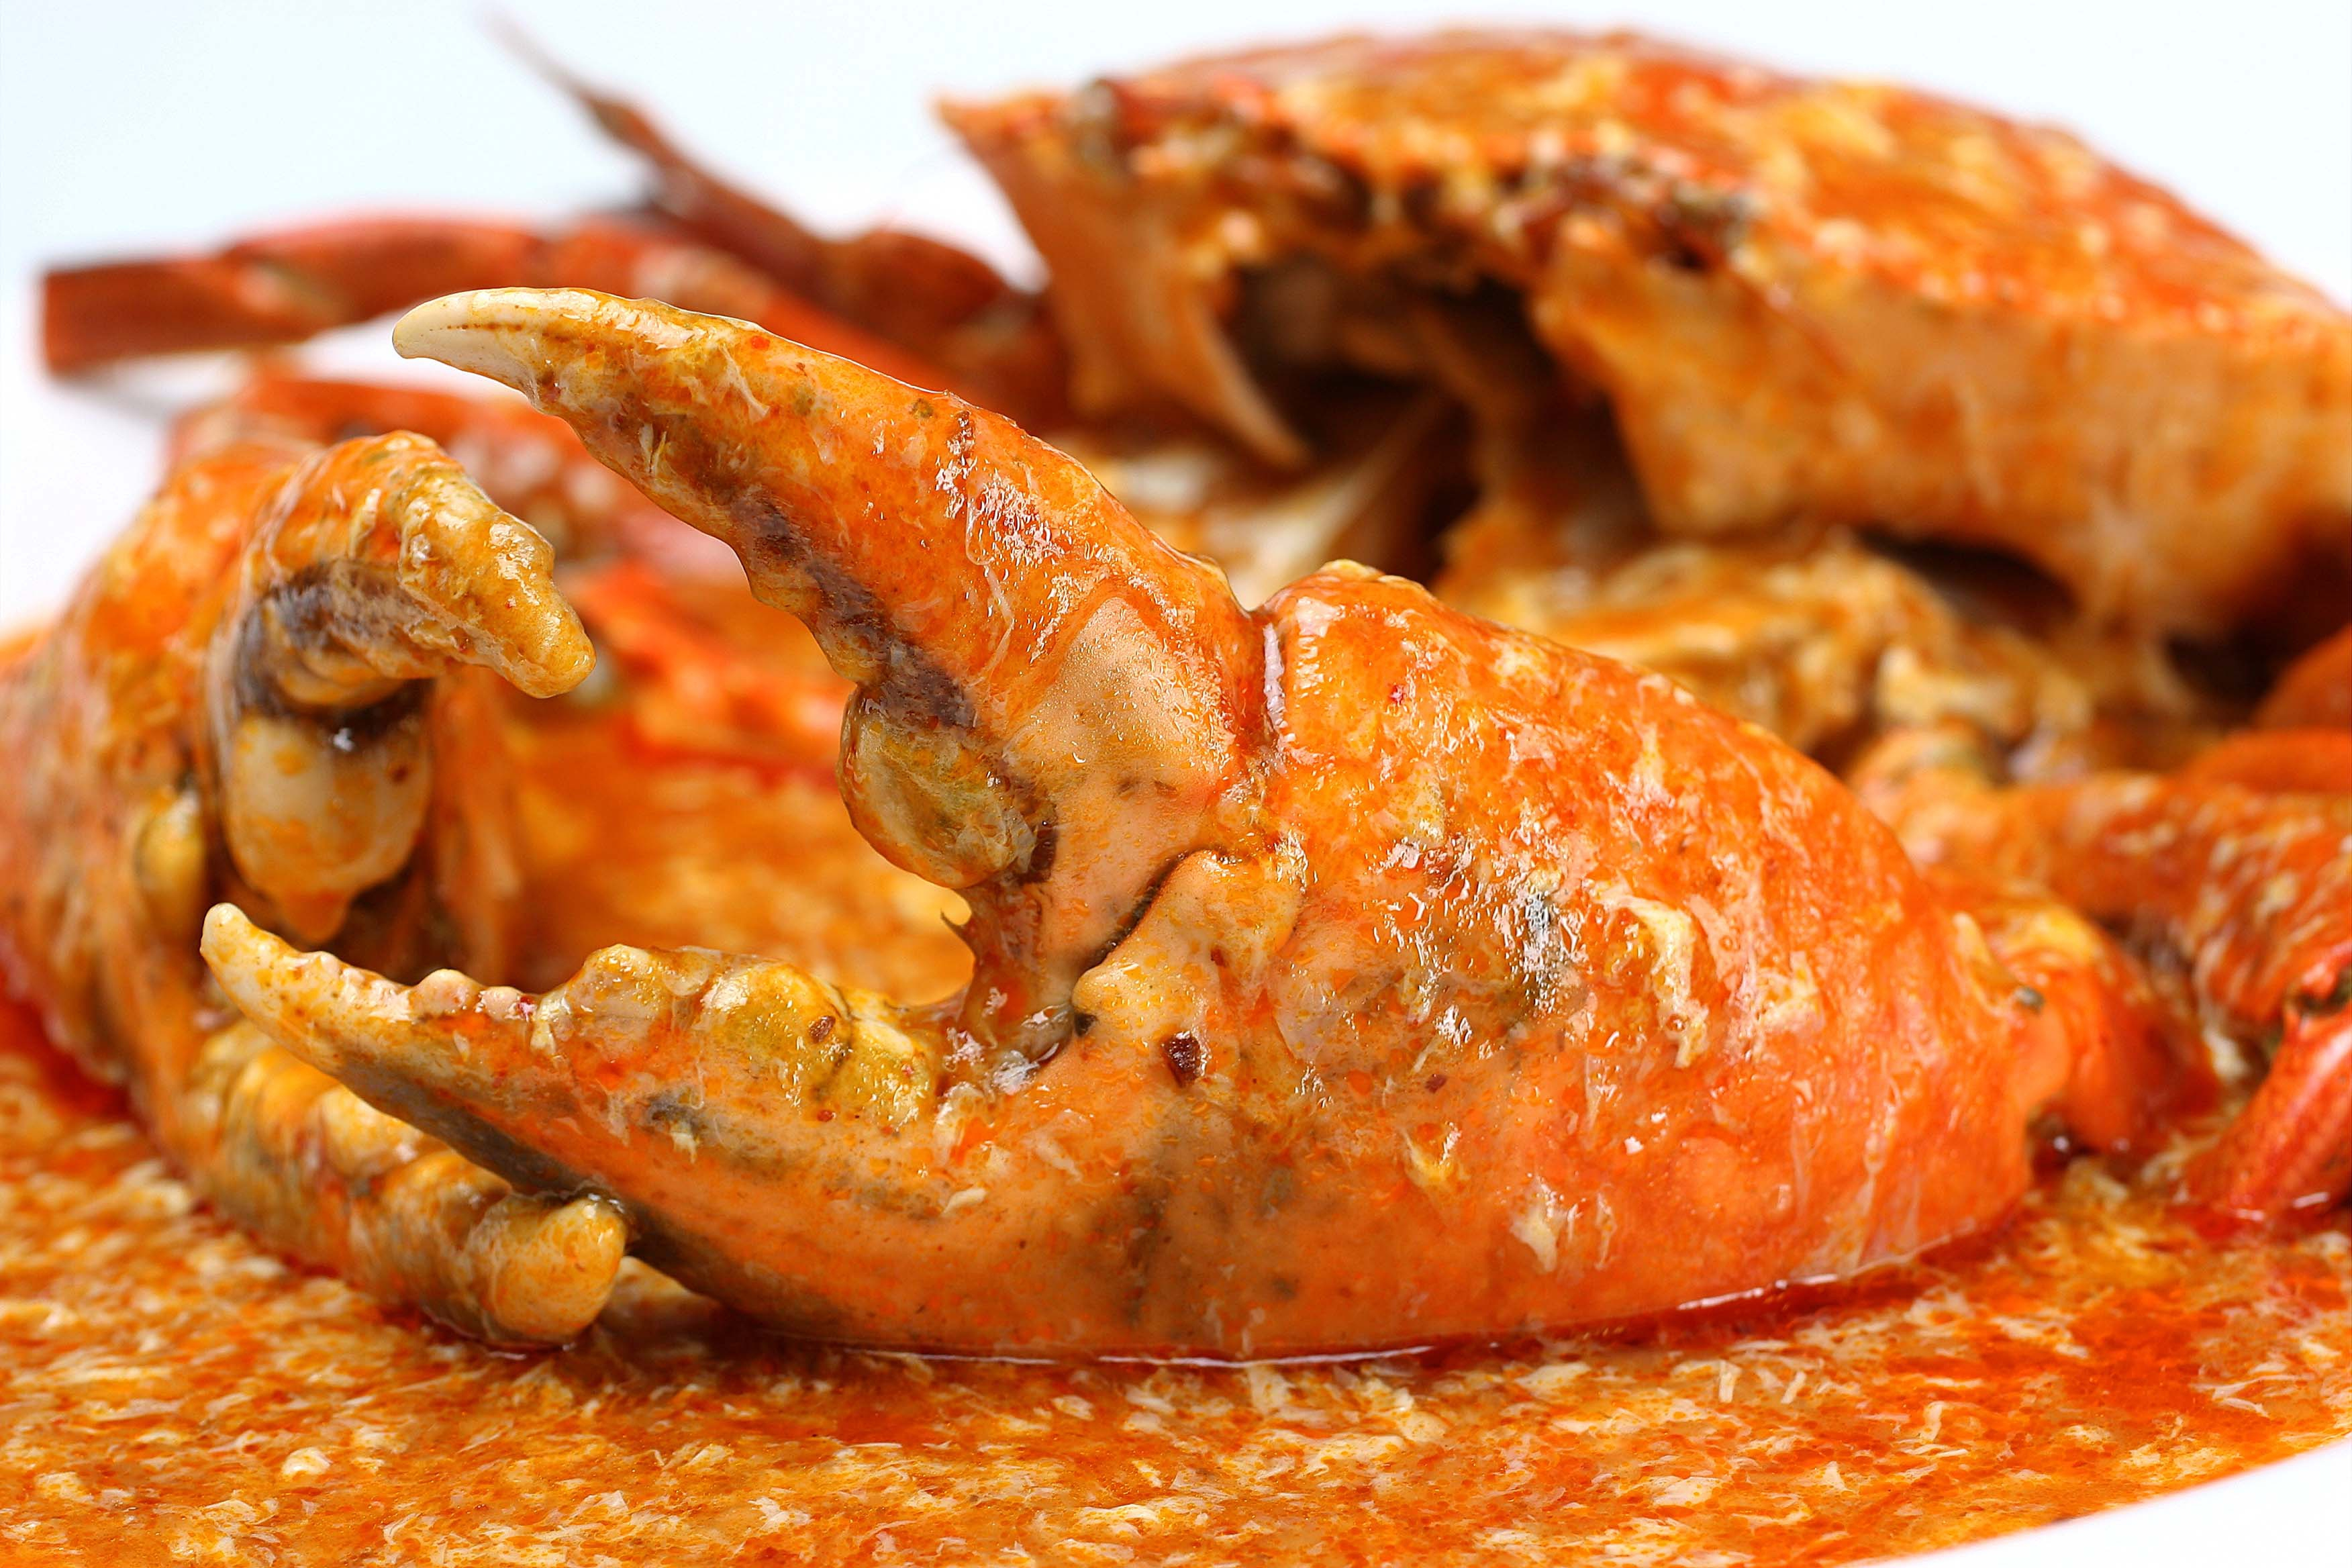 Chili Crab Photos